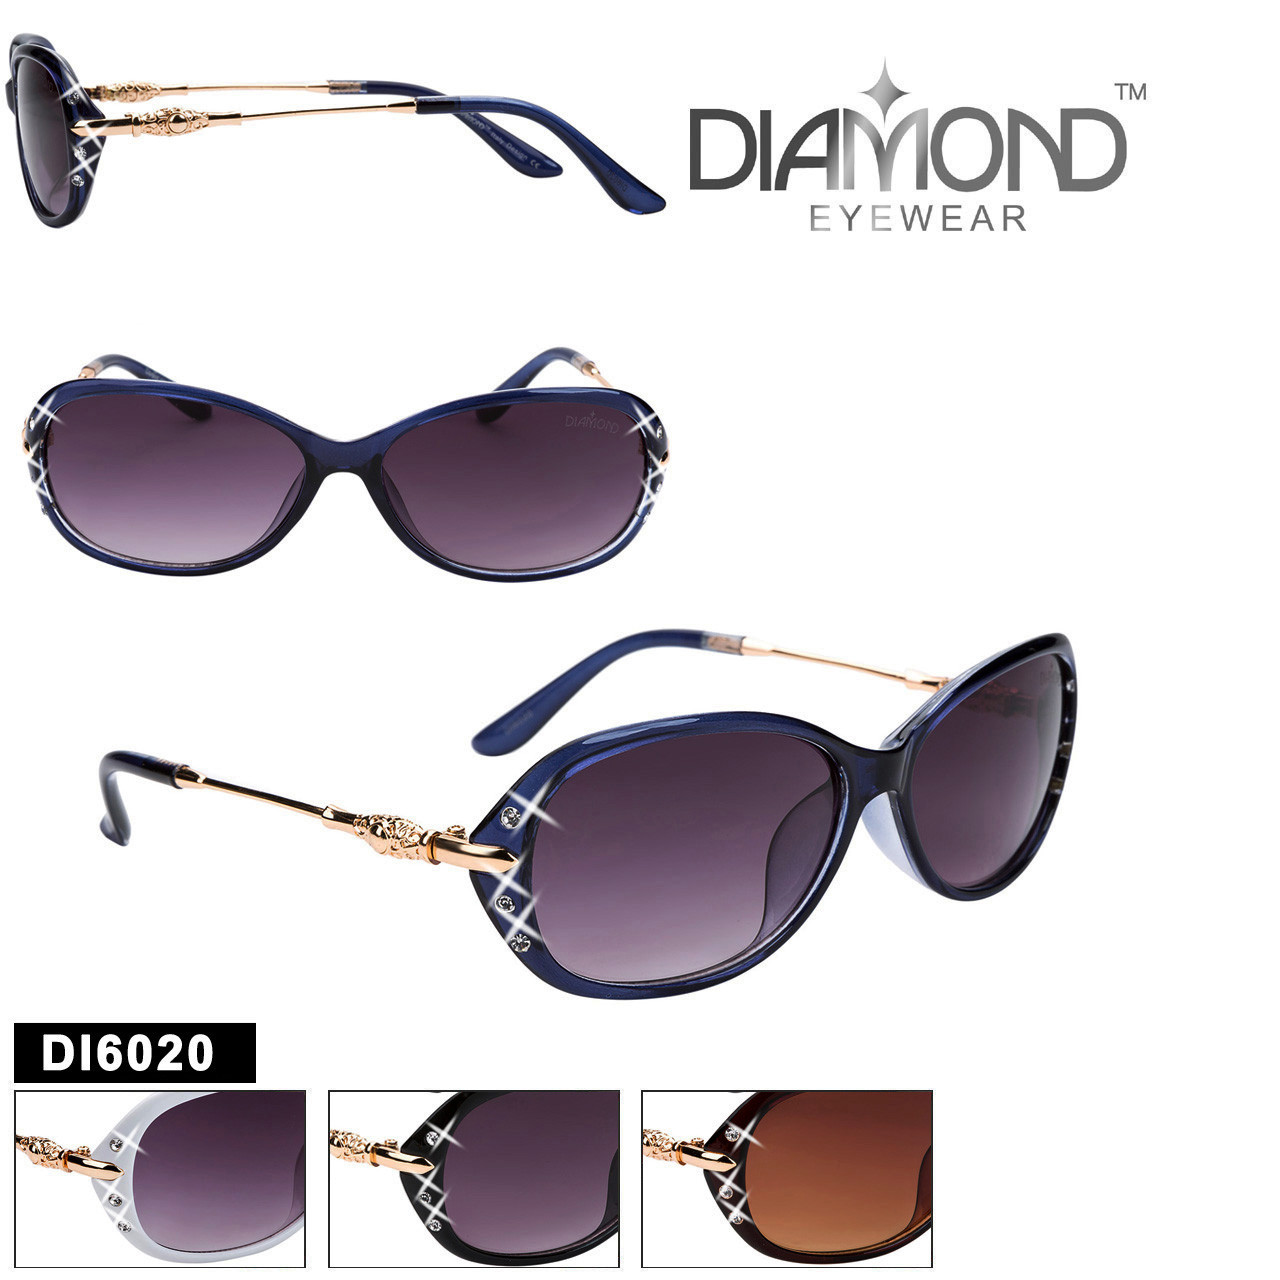 Bulk Diamond™ Rhinestone Sunglasses - DI6020